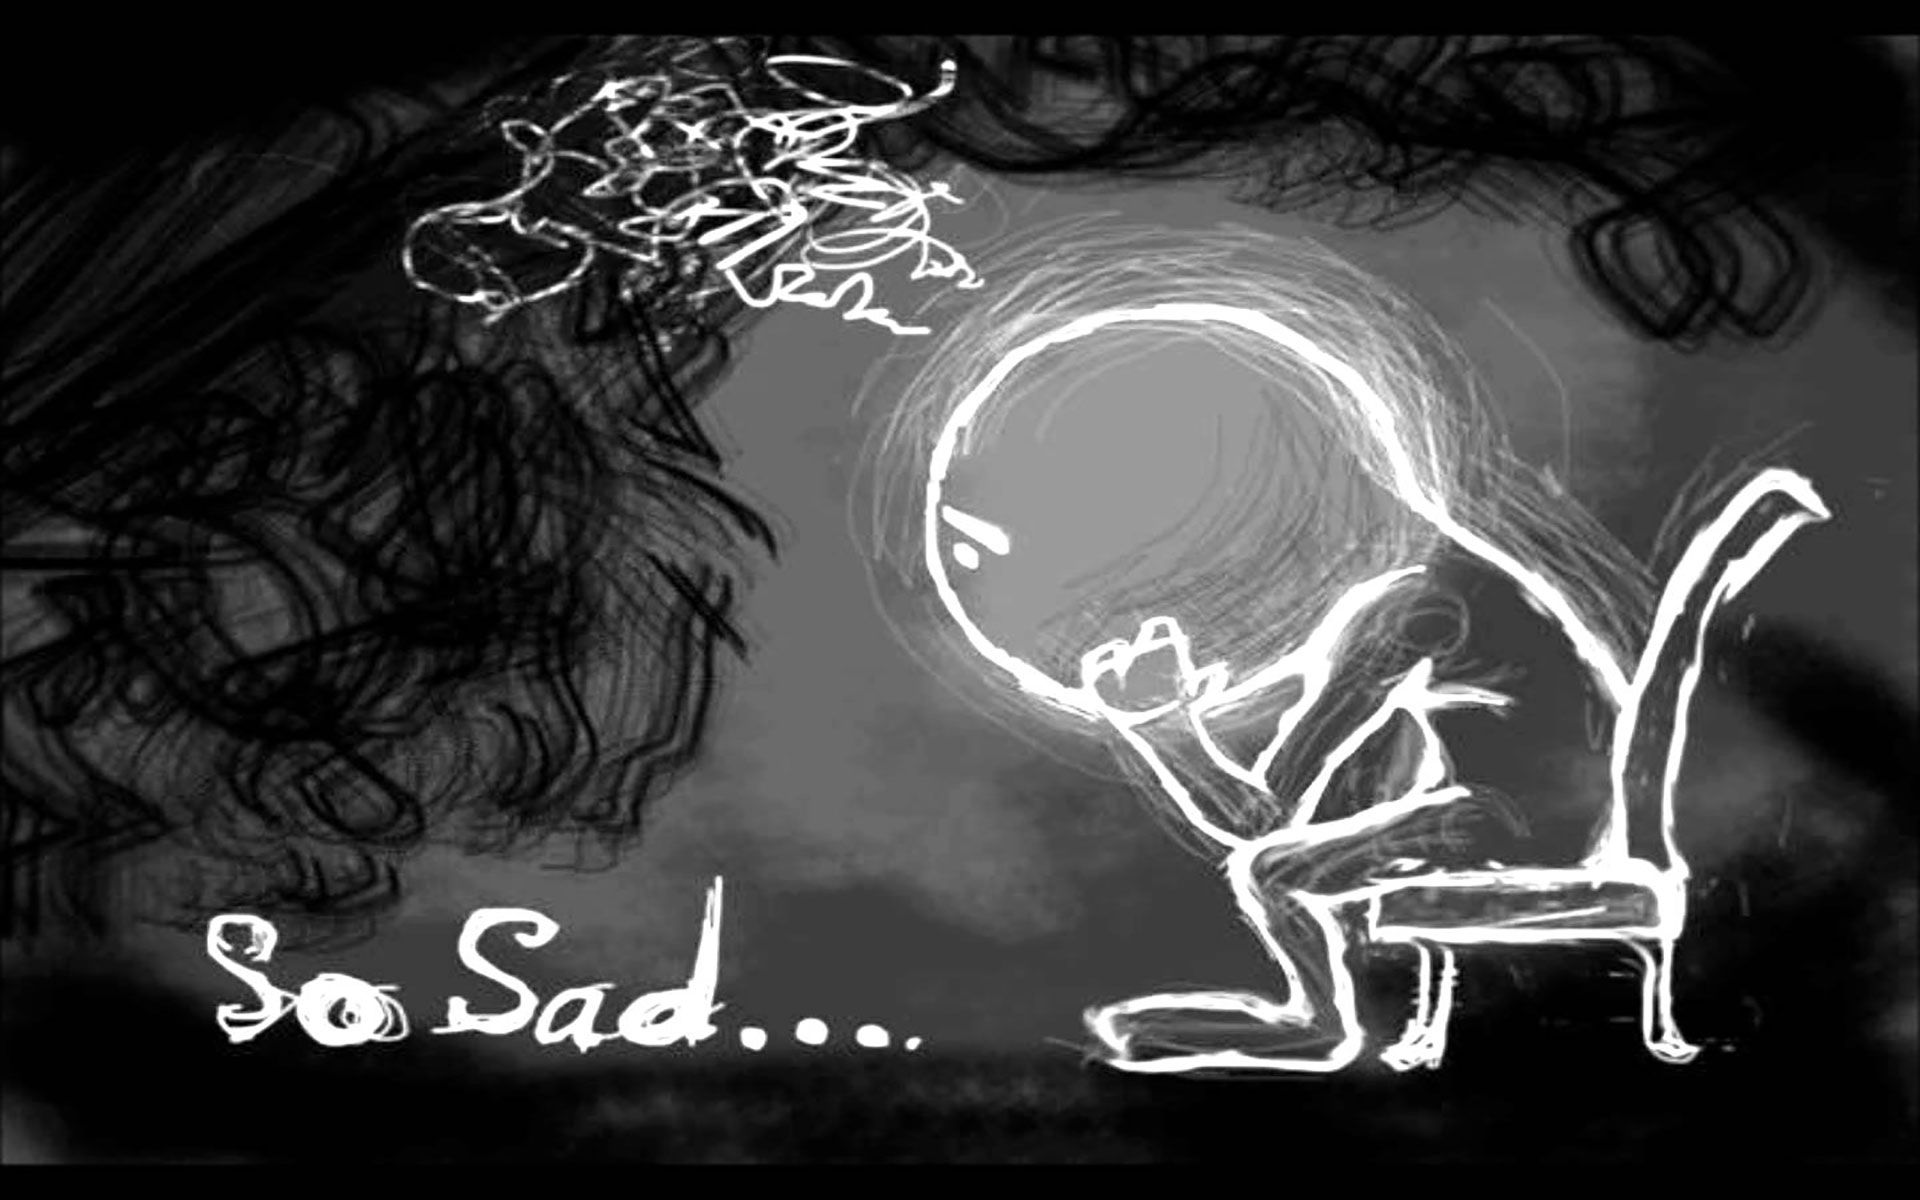 Wallpaper download i miss you - Emo Boy Wallpapers